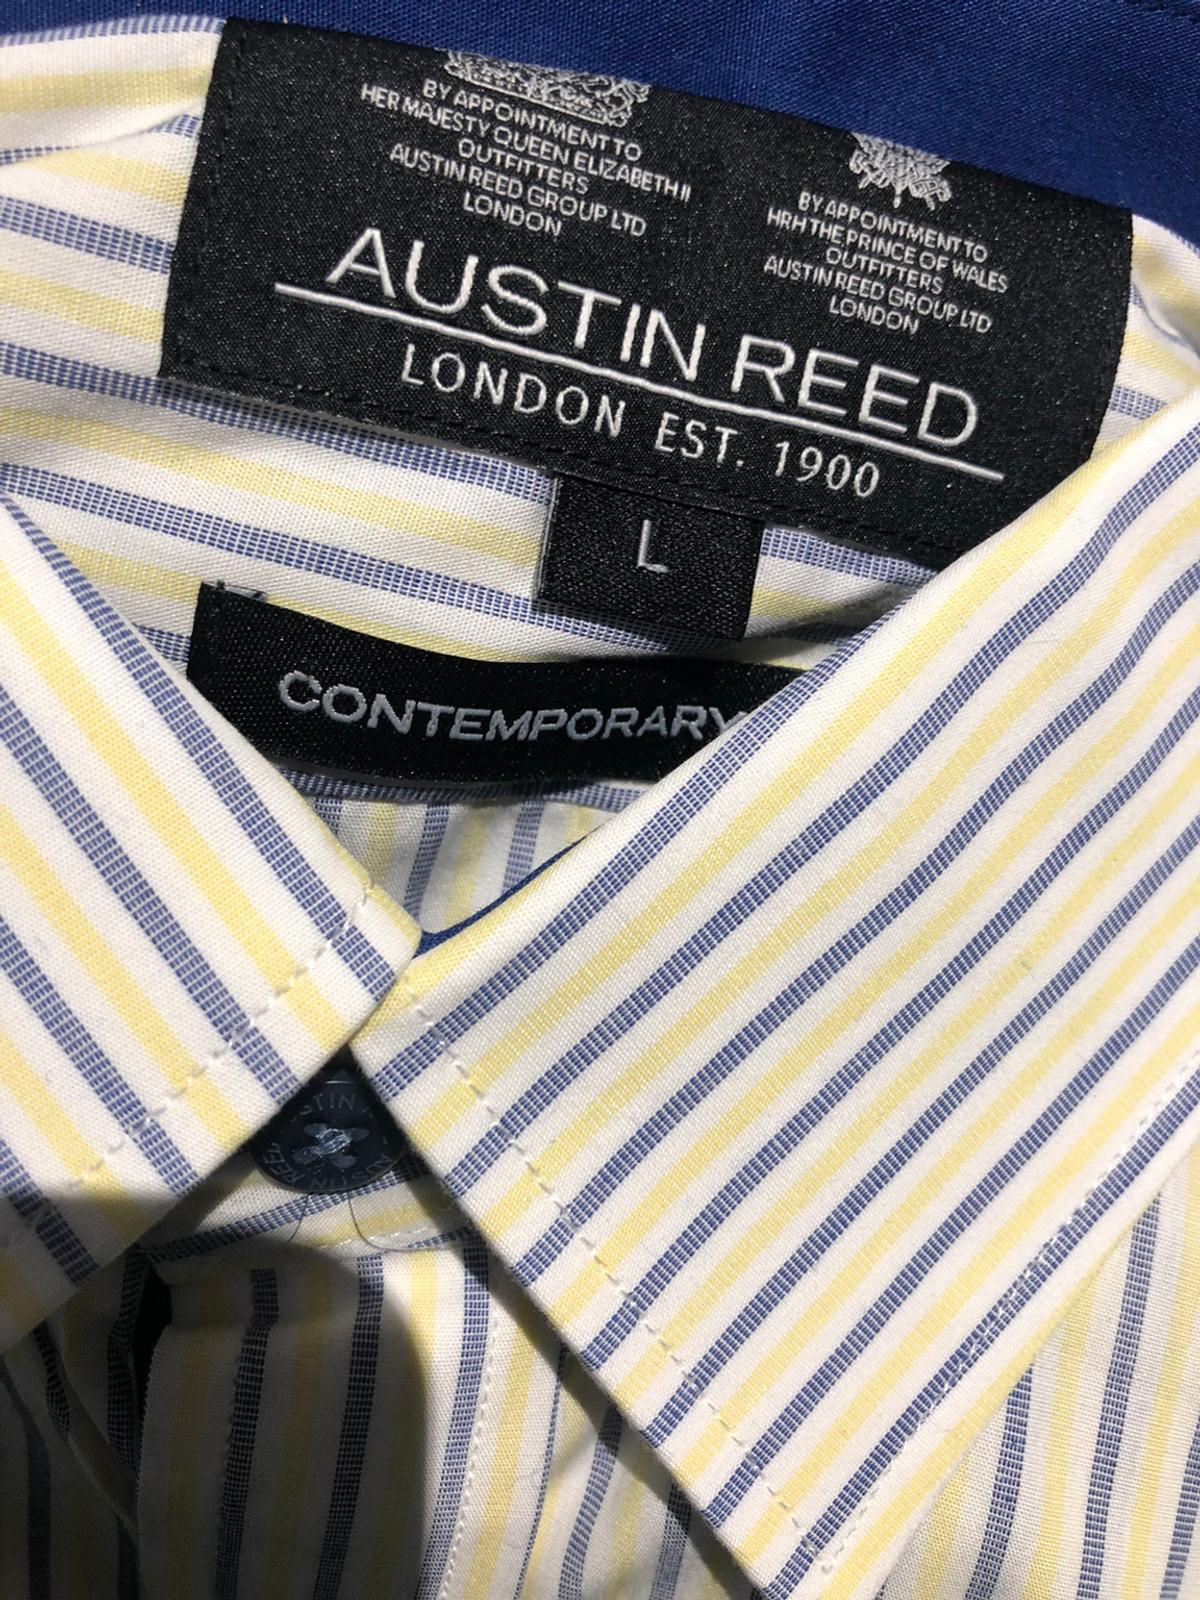 Austin Reed Short Sleeve Shirt Size L Mens In E16 Newham For 10 00 For Sale Shpock